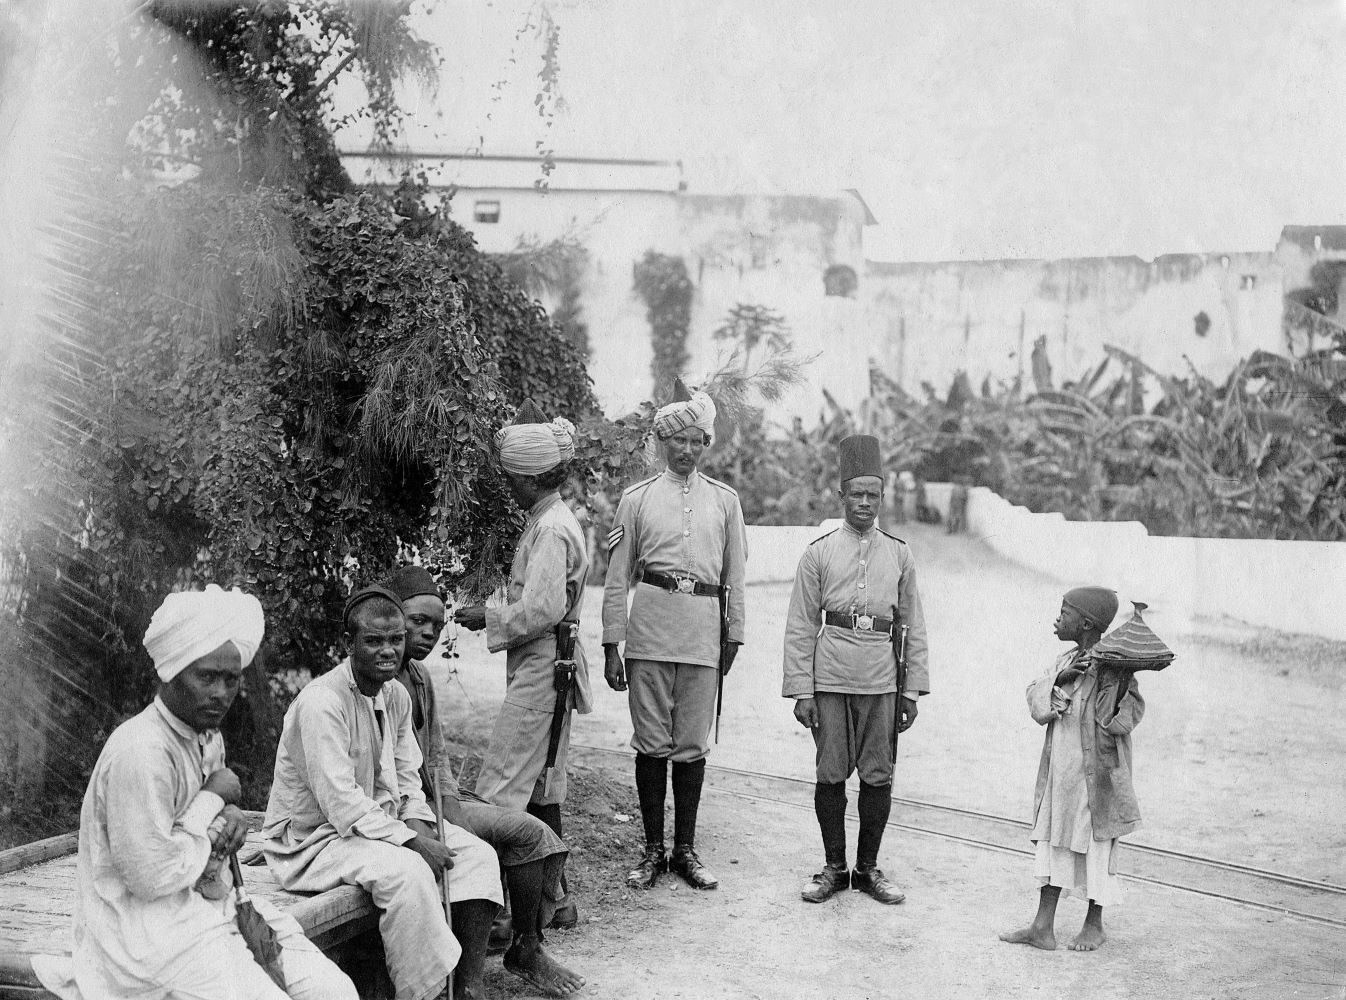 British East Africa, Kenya, Mombasa: Guard post in front of Fort Jesus - undated, probably around 1910, original photograph